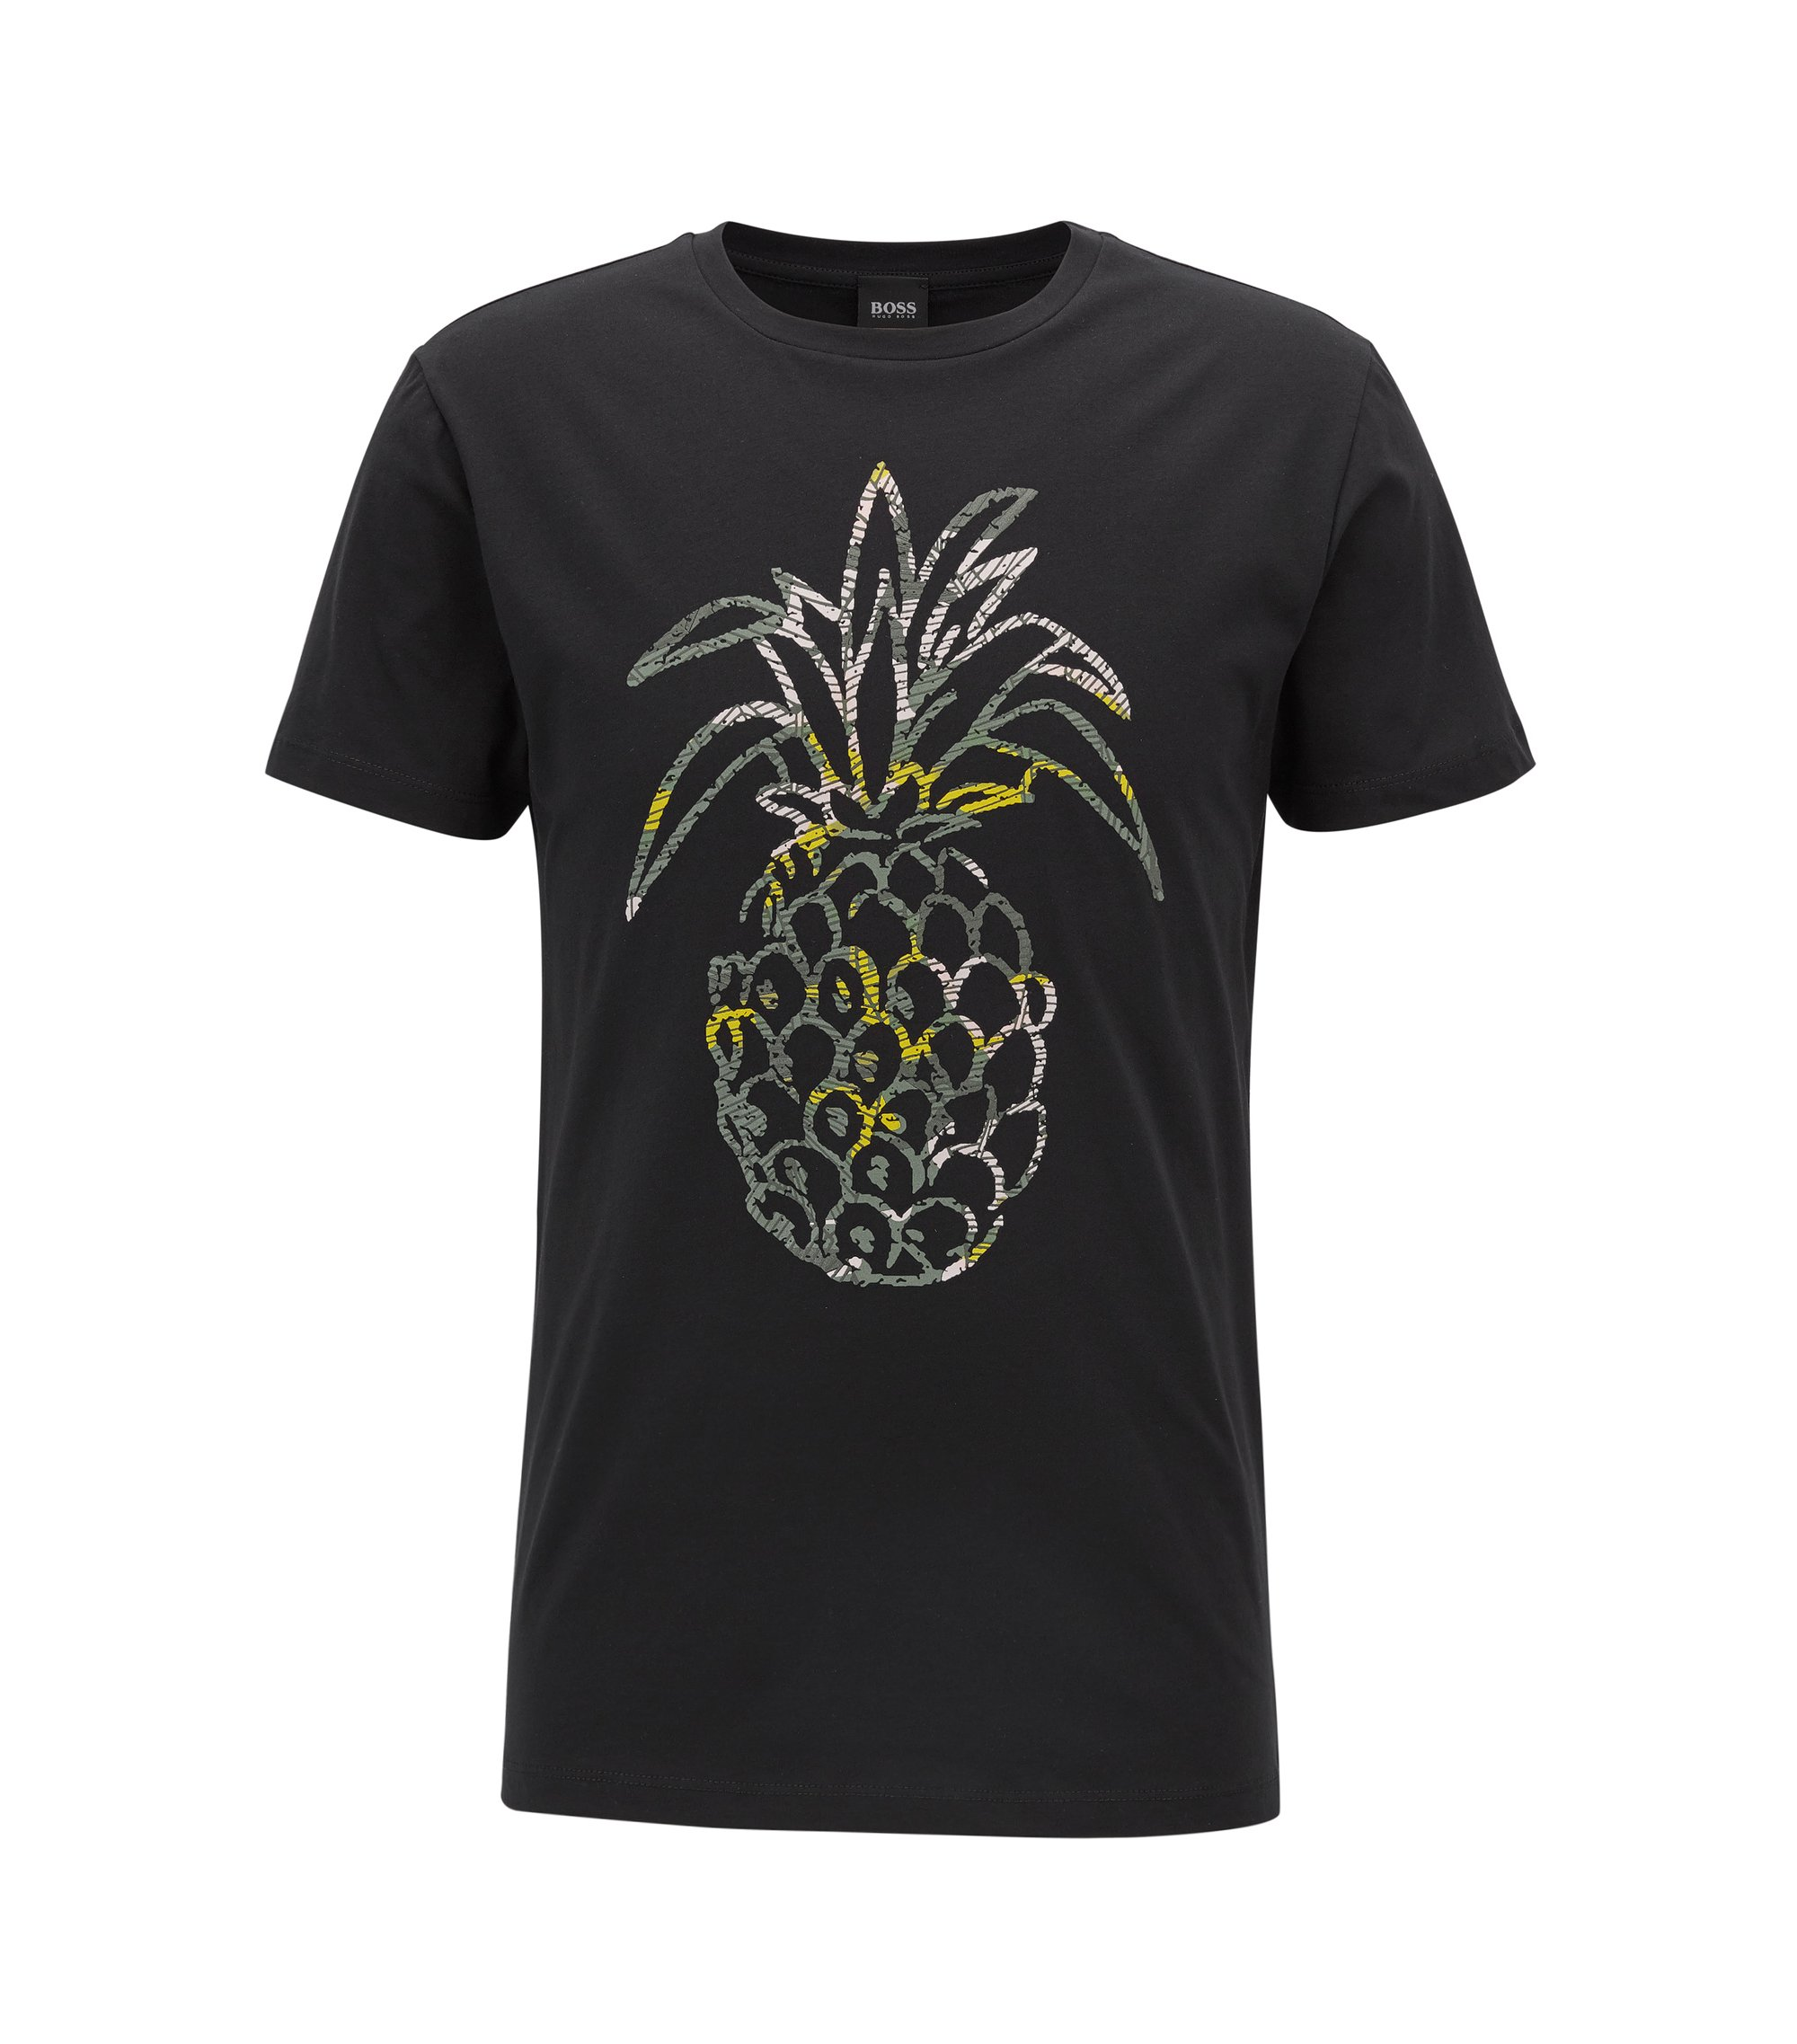 T-shirt regular fit in jersey di cotone lavato con ananas stampato, Nero